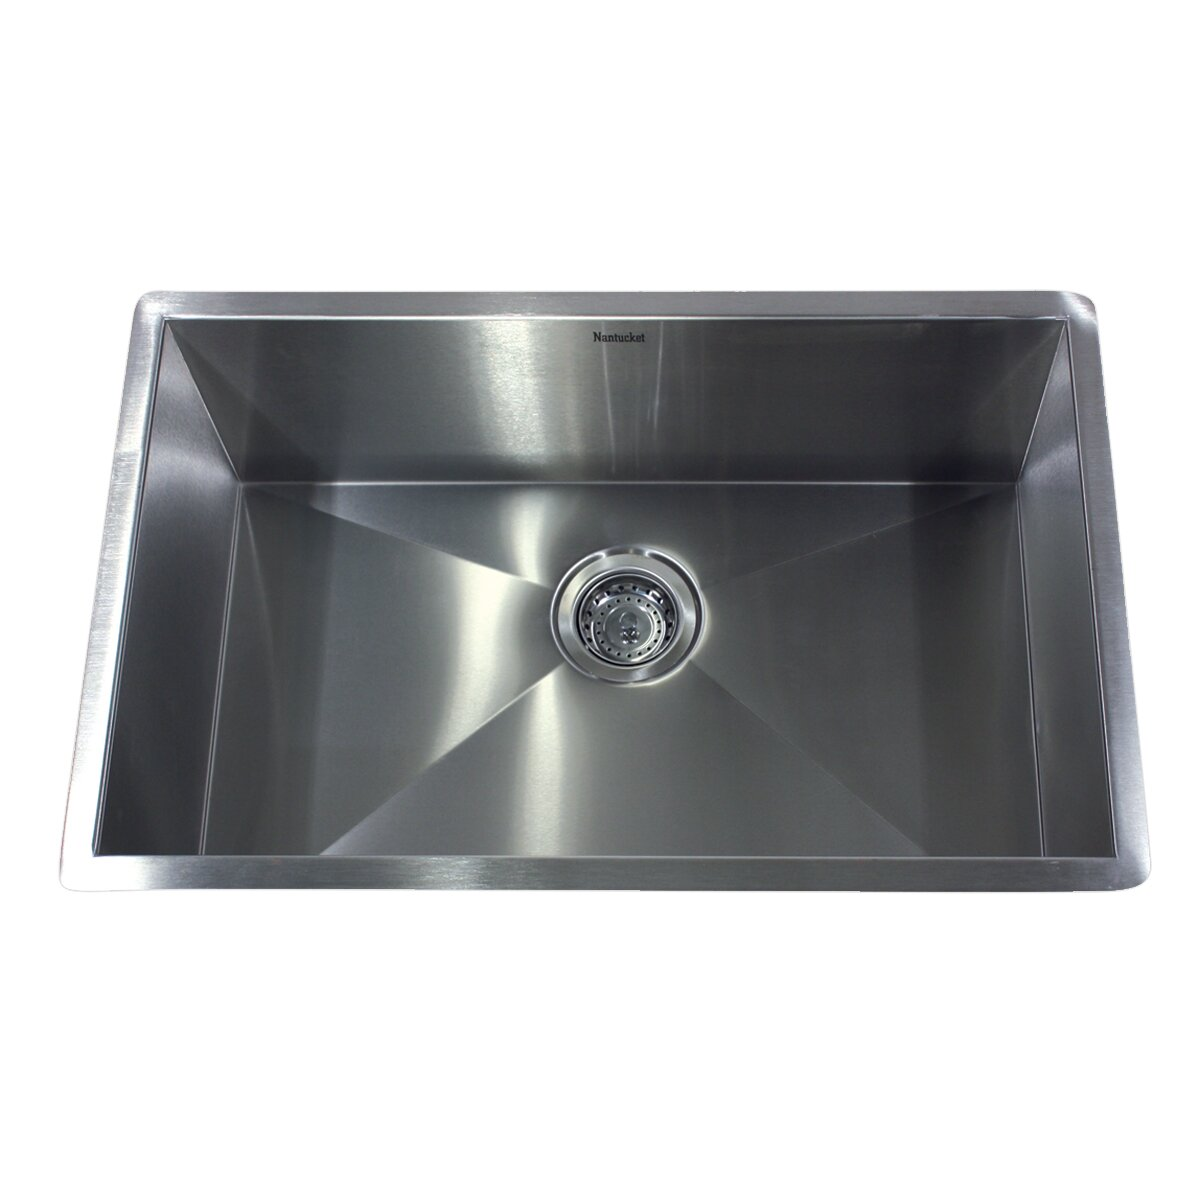 "Nantucket Sinks 28"" x 18"" Zero Radius Single Bowl"